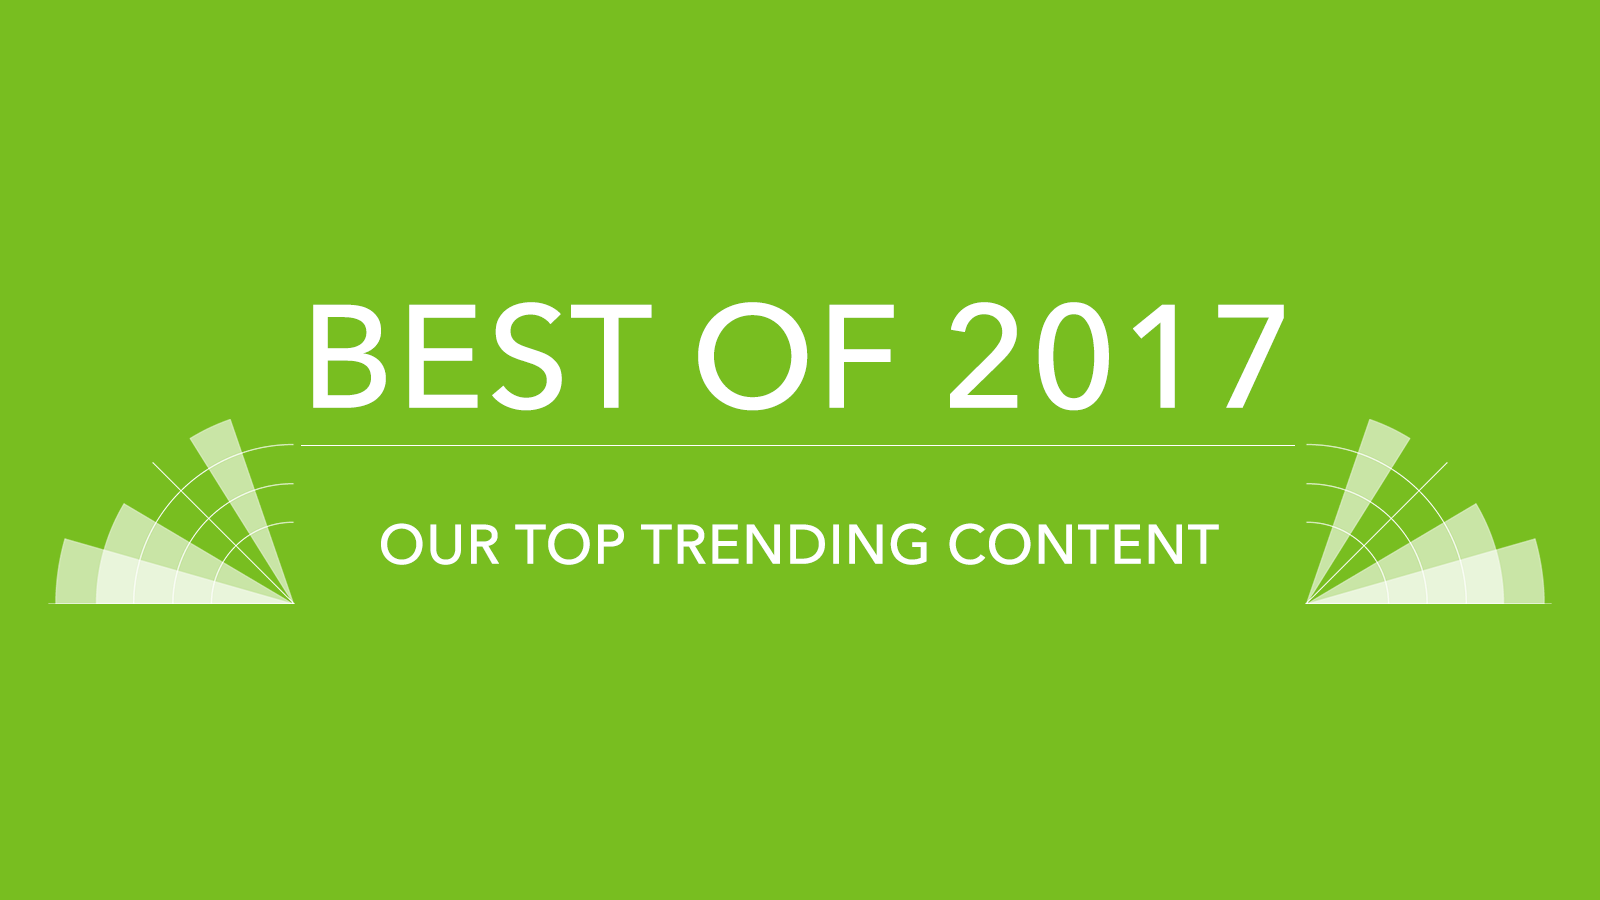 Best of 2017: Our Top Trending Content